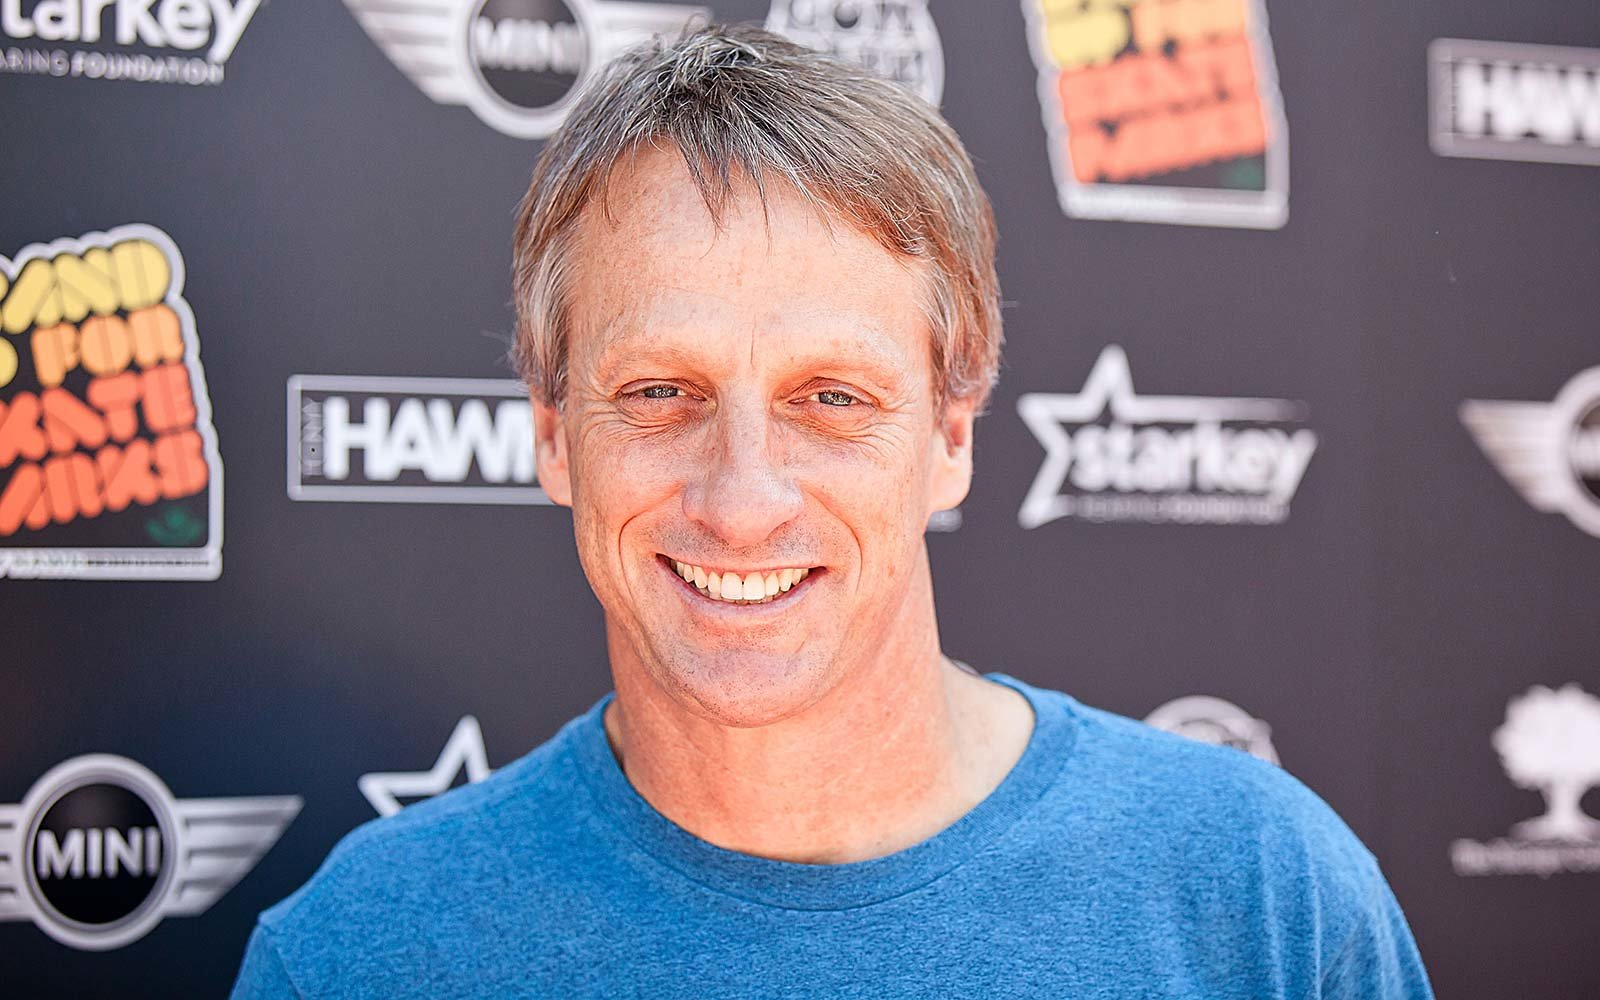 Best Trip Tony Hawk Has Ever Been On